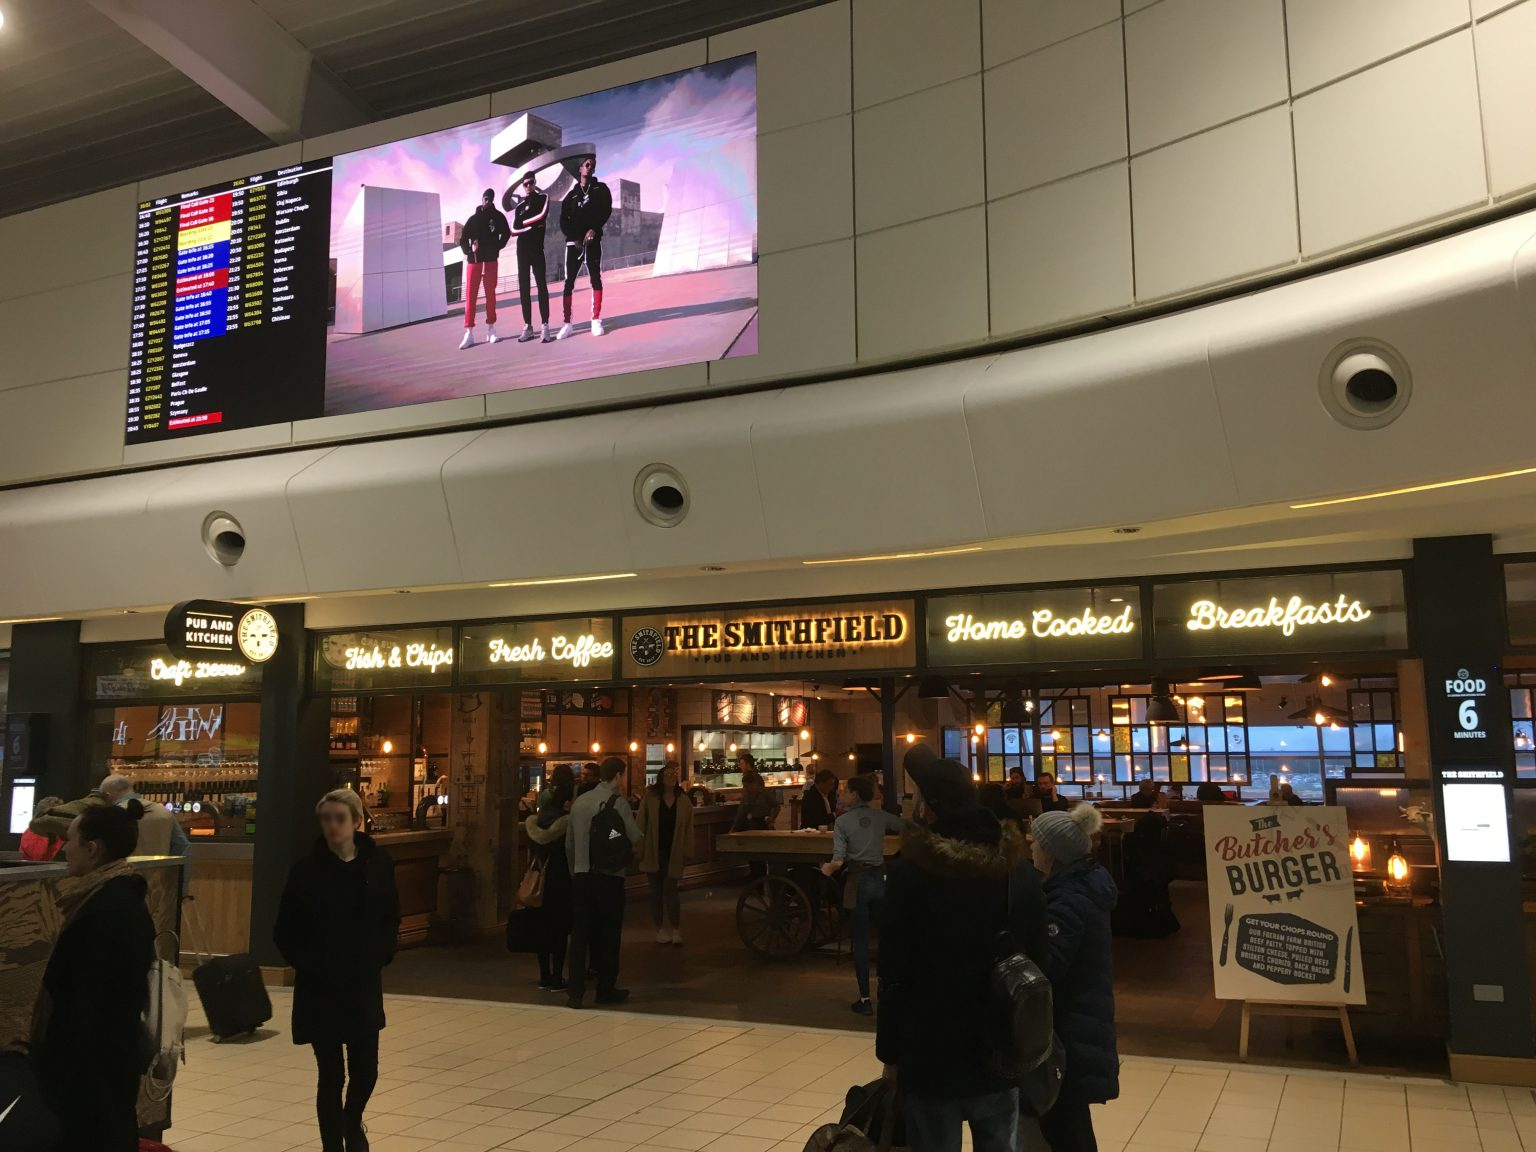 LED wall with flight information and advertising at London Luton Airport